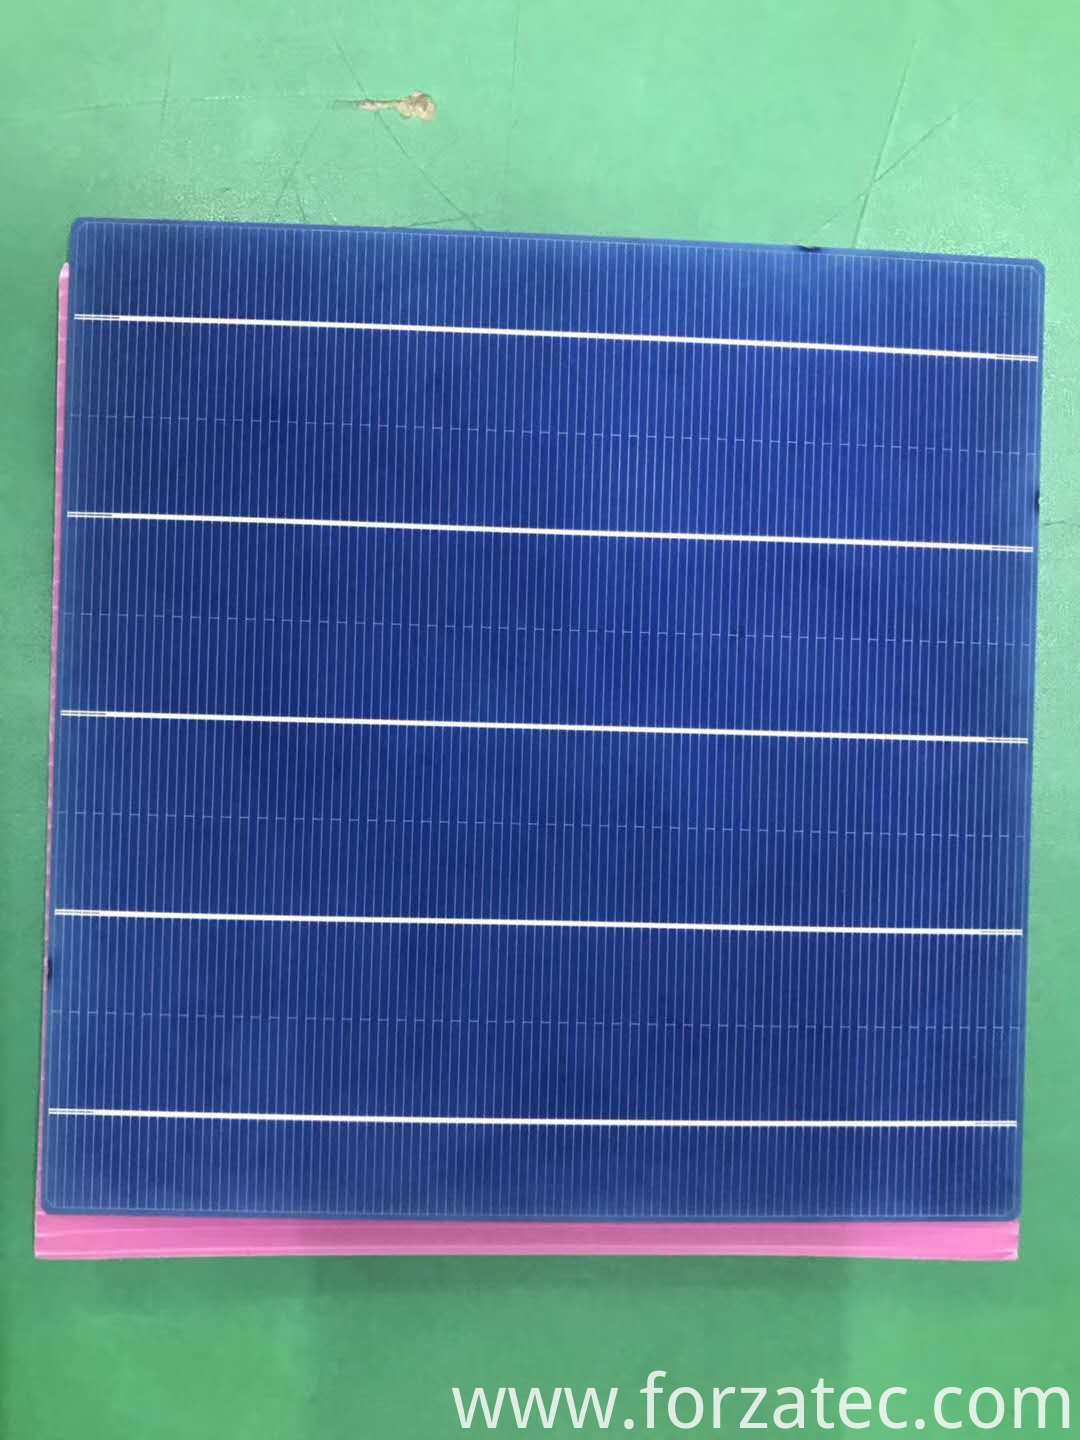 poly silicon solar cell